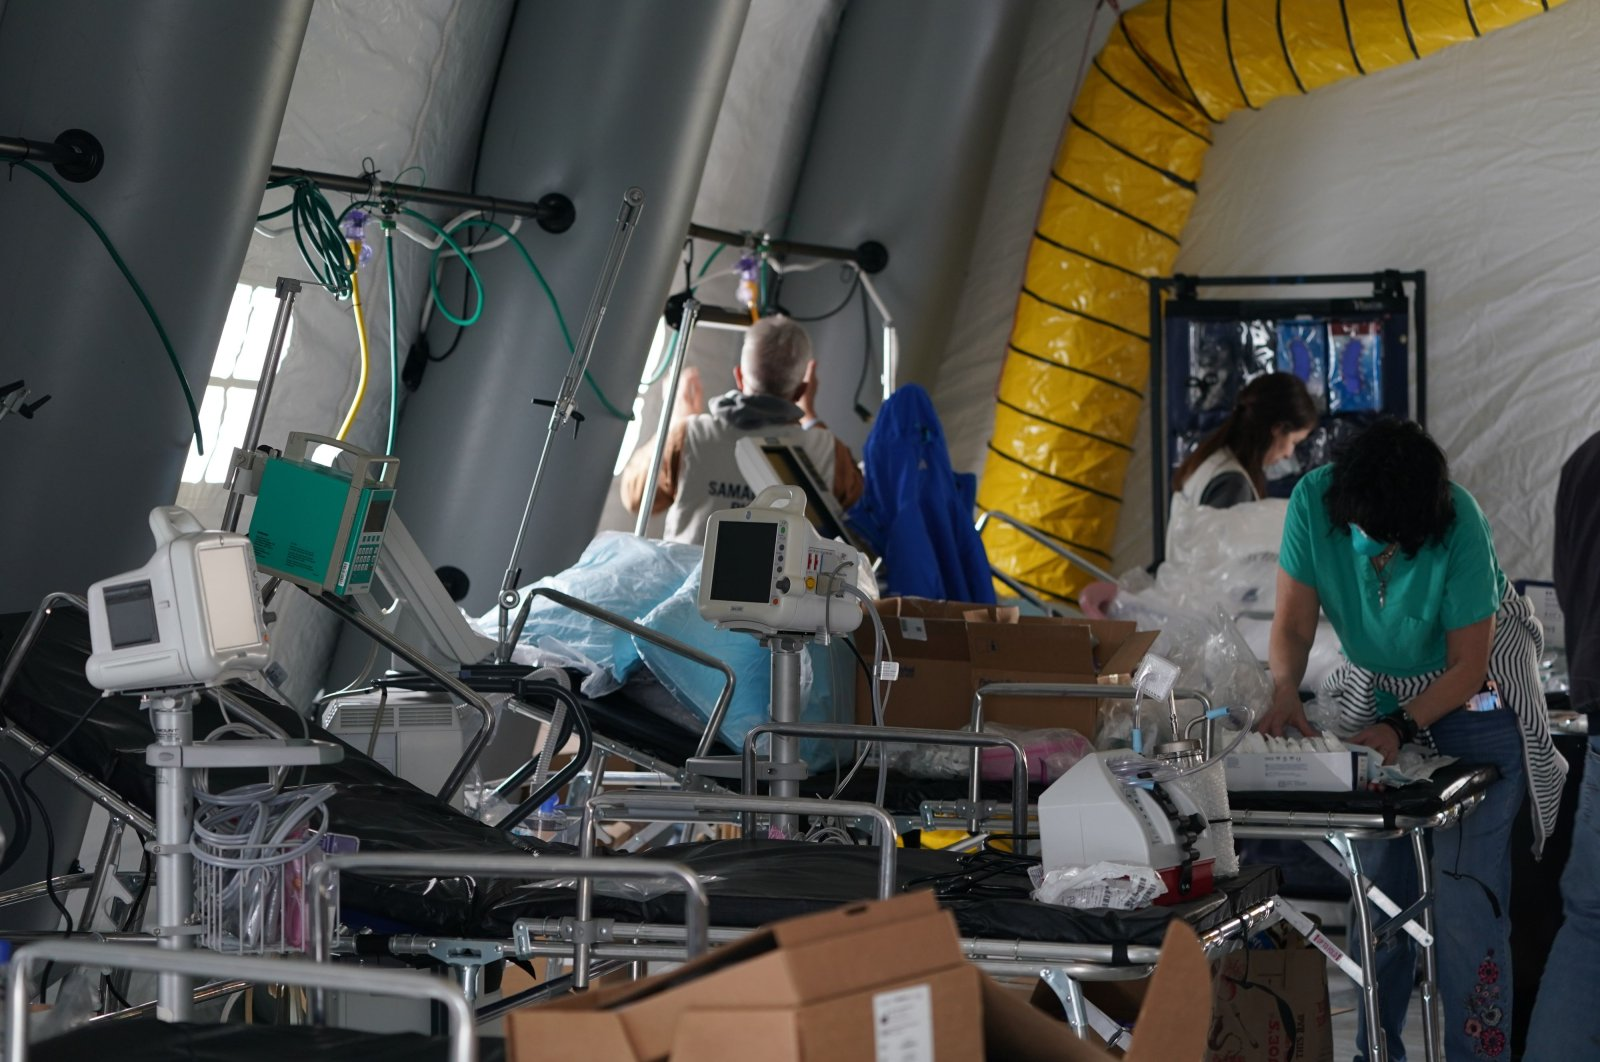 Medical supplies and beds are seen inside a tent as volunteers from the international Christian relief organization Samaritan's Purse set up an Emergency Field Hospital for patients with COVID-19 in Central Park across Fifth Avenue from Mt. Sinai Hospital on Monday, March 30, 2020, in New York, U.S. (AP Photo)